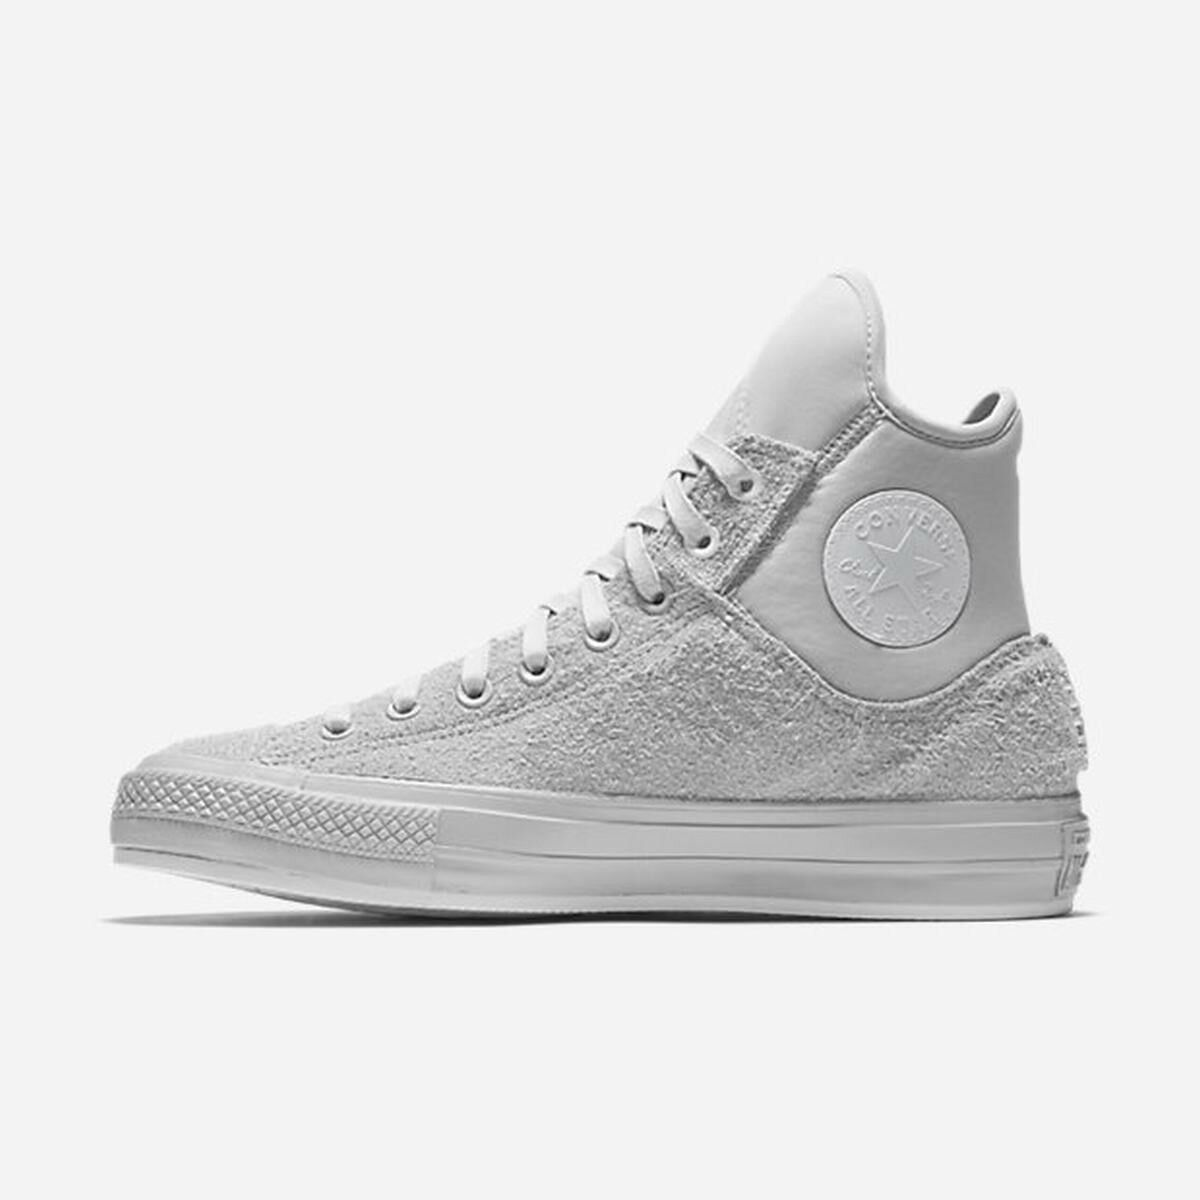 Men's 153638C Converse Chuck Taylor AS MA-1 SE High Top, 153638C Men's Sizes 8-11.5 Ash Grey/W 9e1255